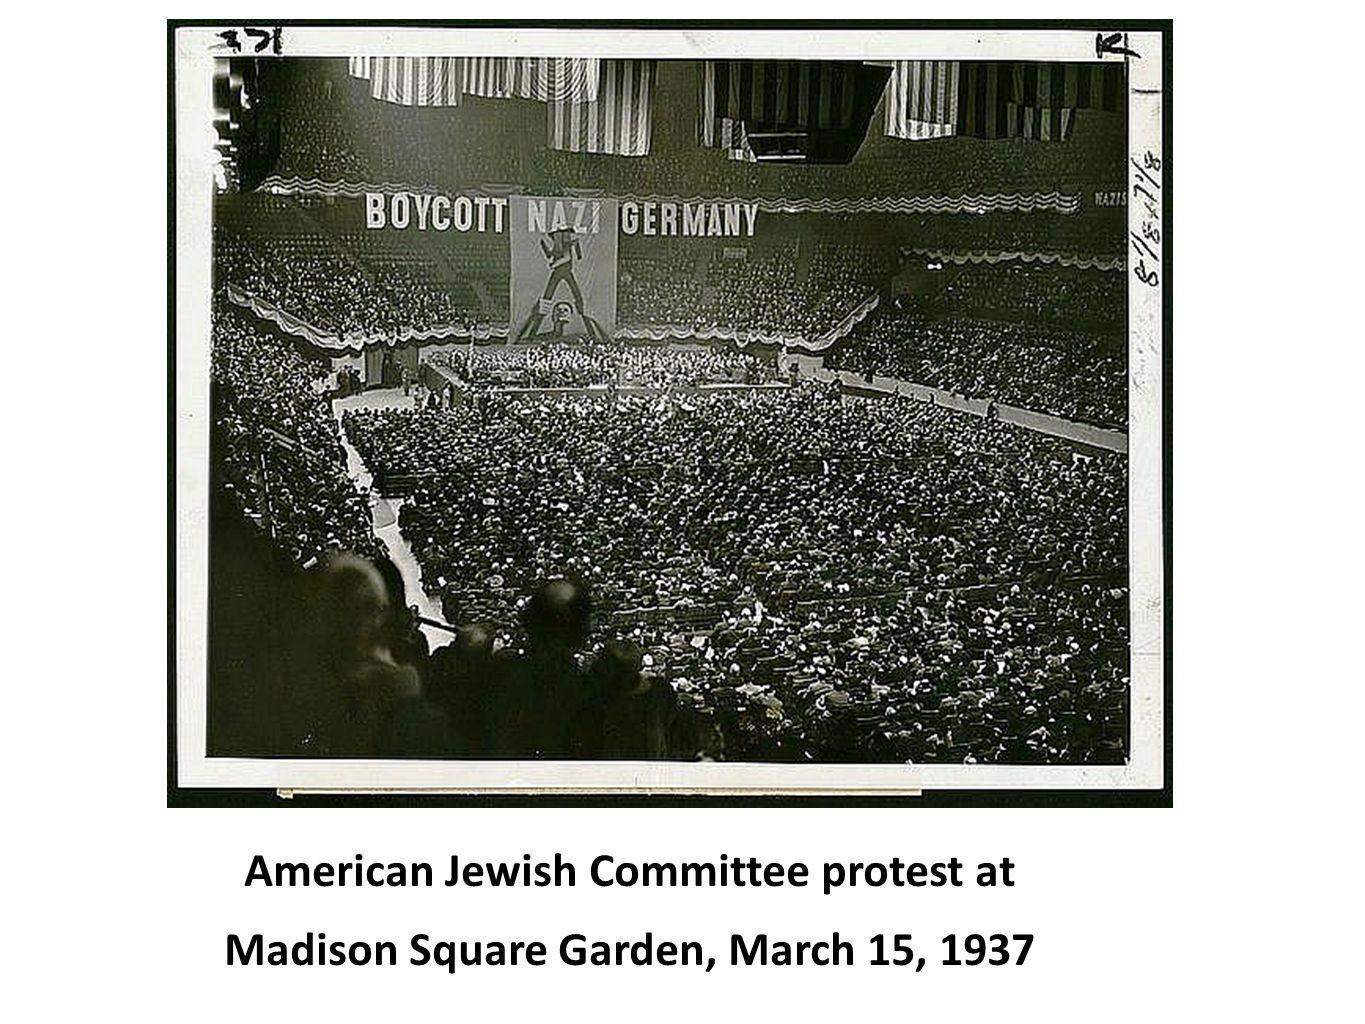 American Jewish Committee protest at Madison Square Garden, March 15, 1937